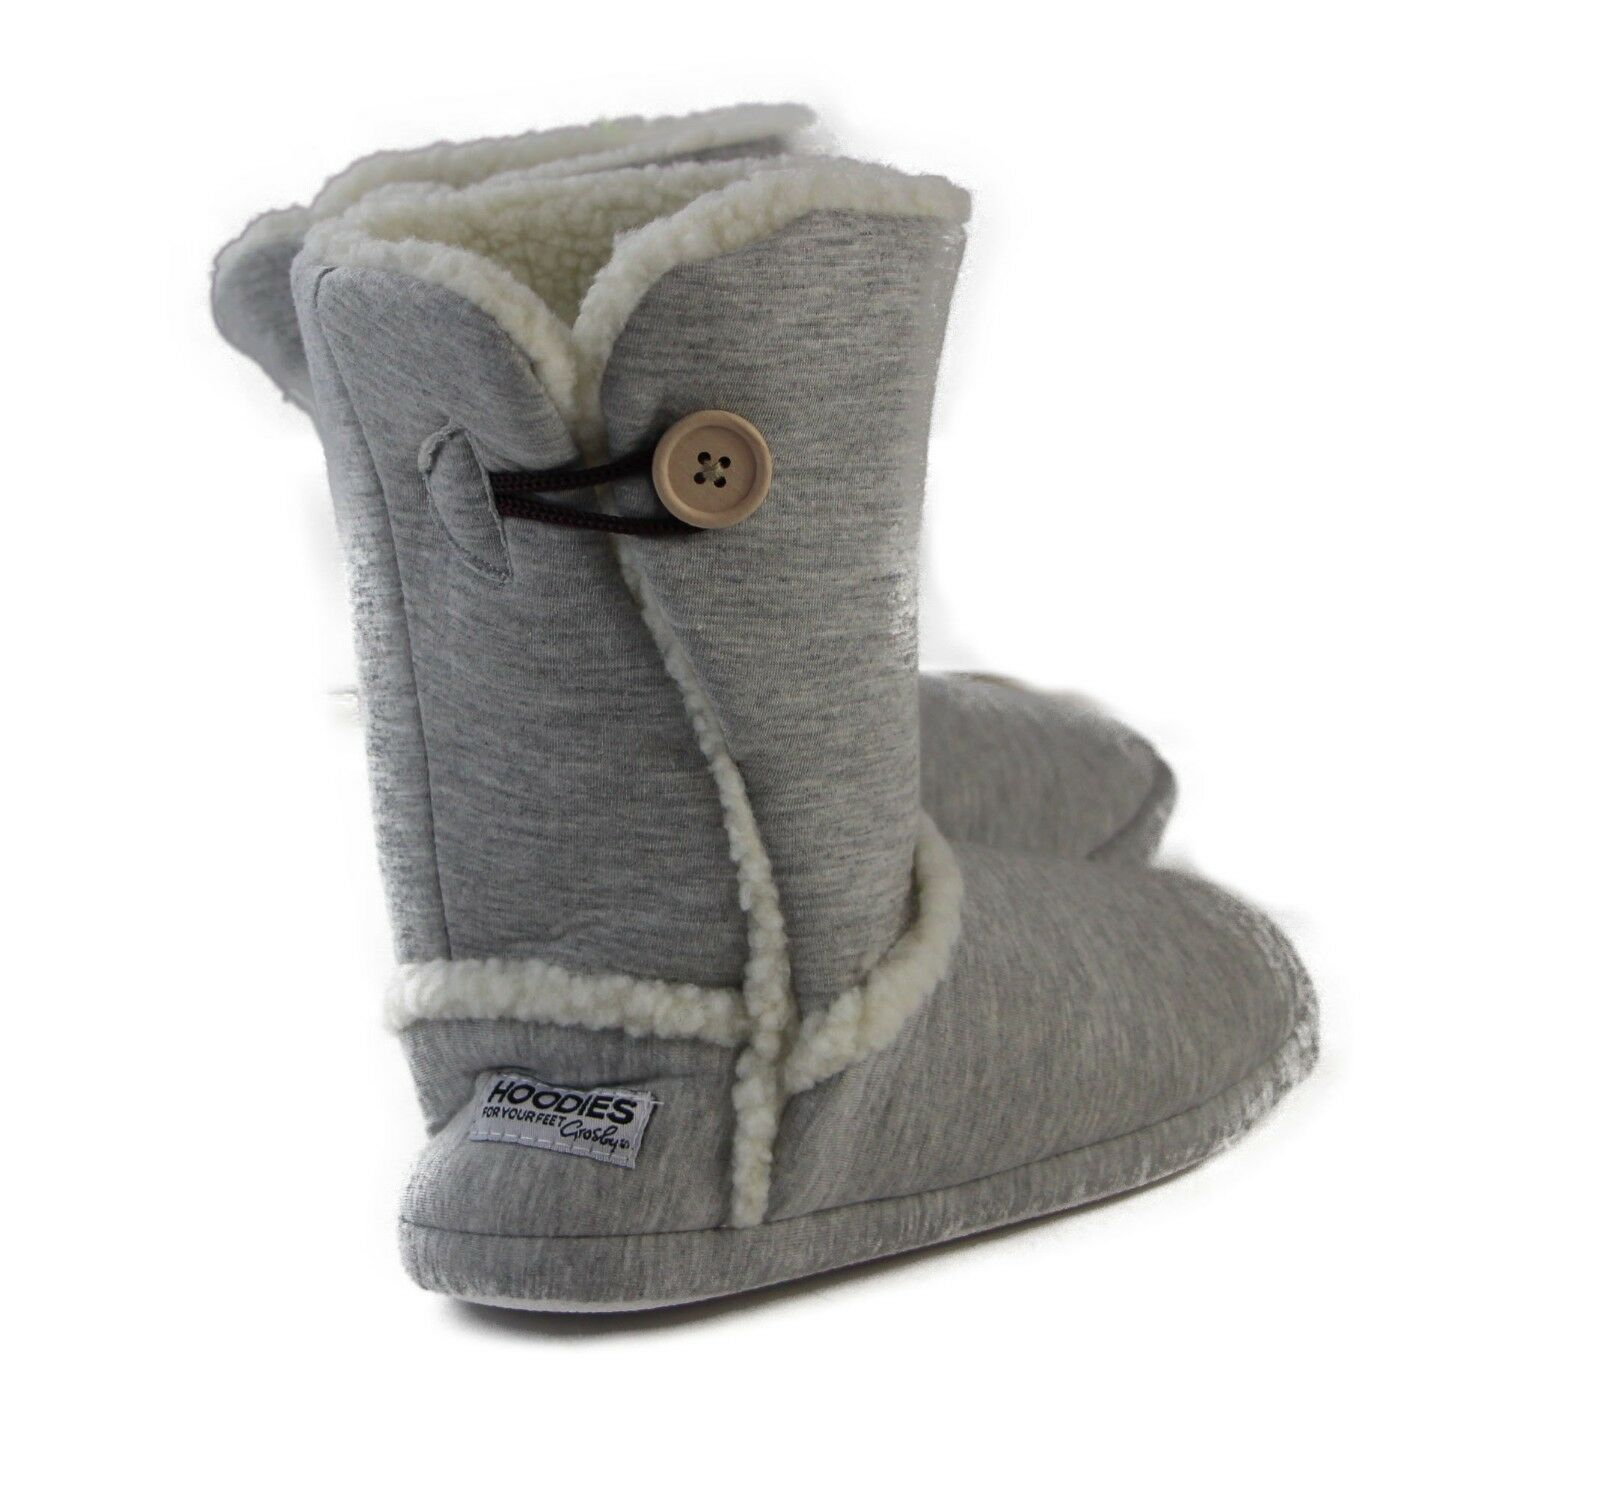 GROSBY-SHERPA-HOODIES-Button-Boots-Black-Grey-Warm-Slippers-Size-S-M-L-XL thumbnail 12